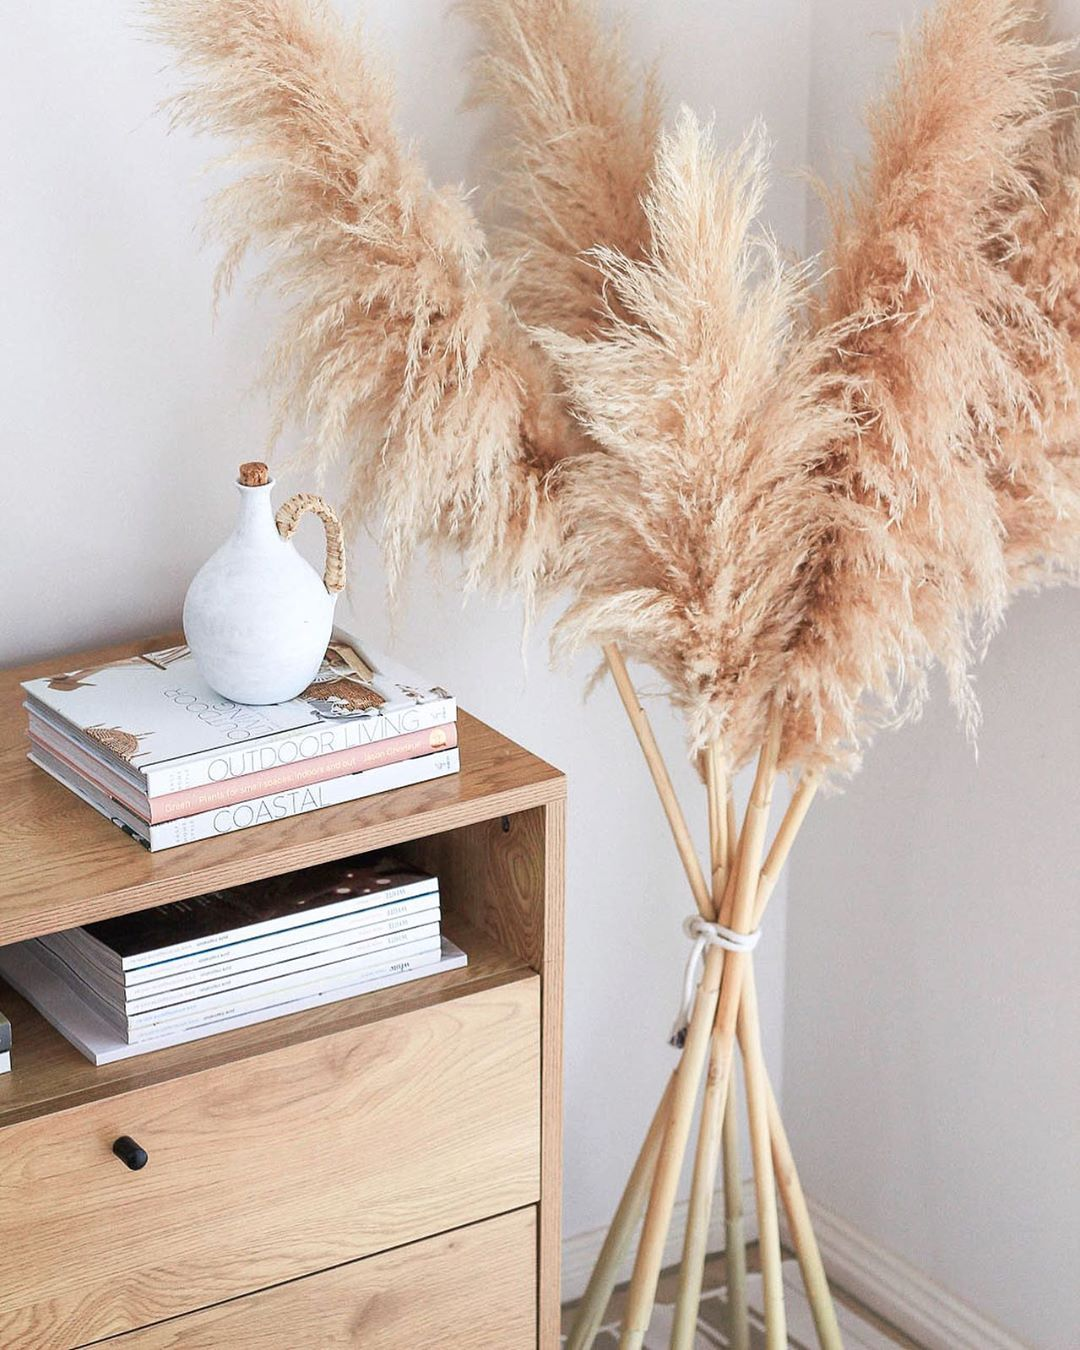 How to display Pampas Grass | Simple decor, Pampas grass, Pampas